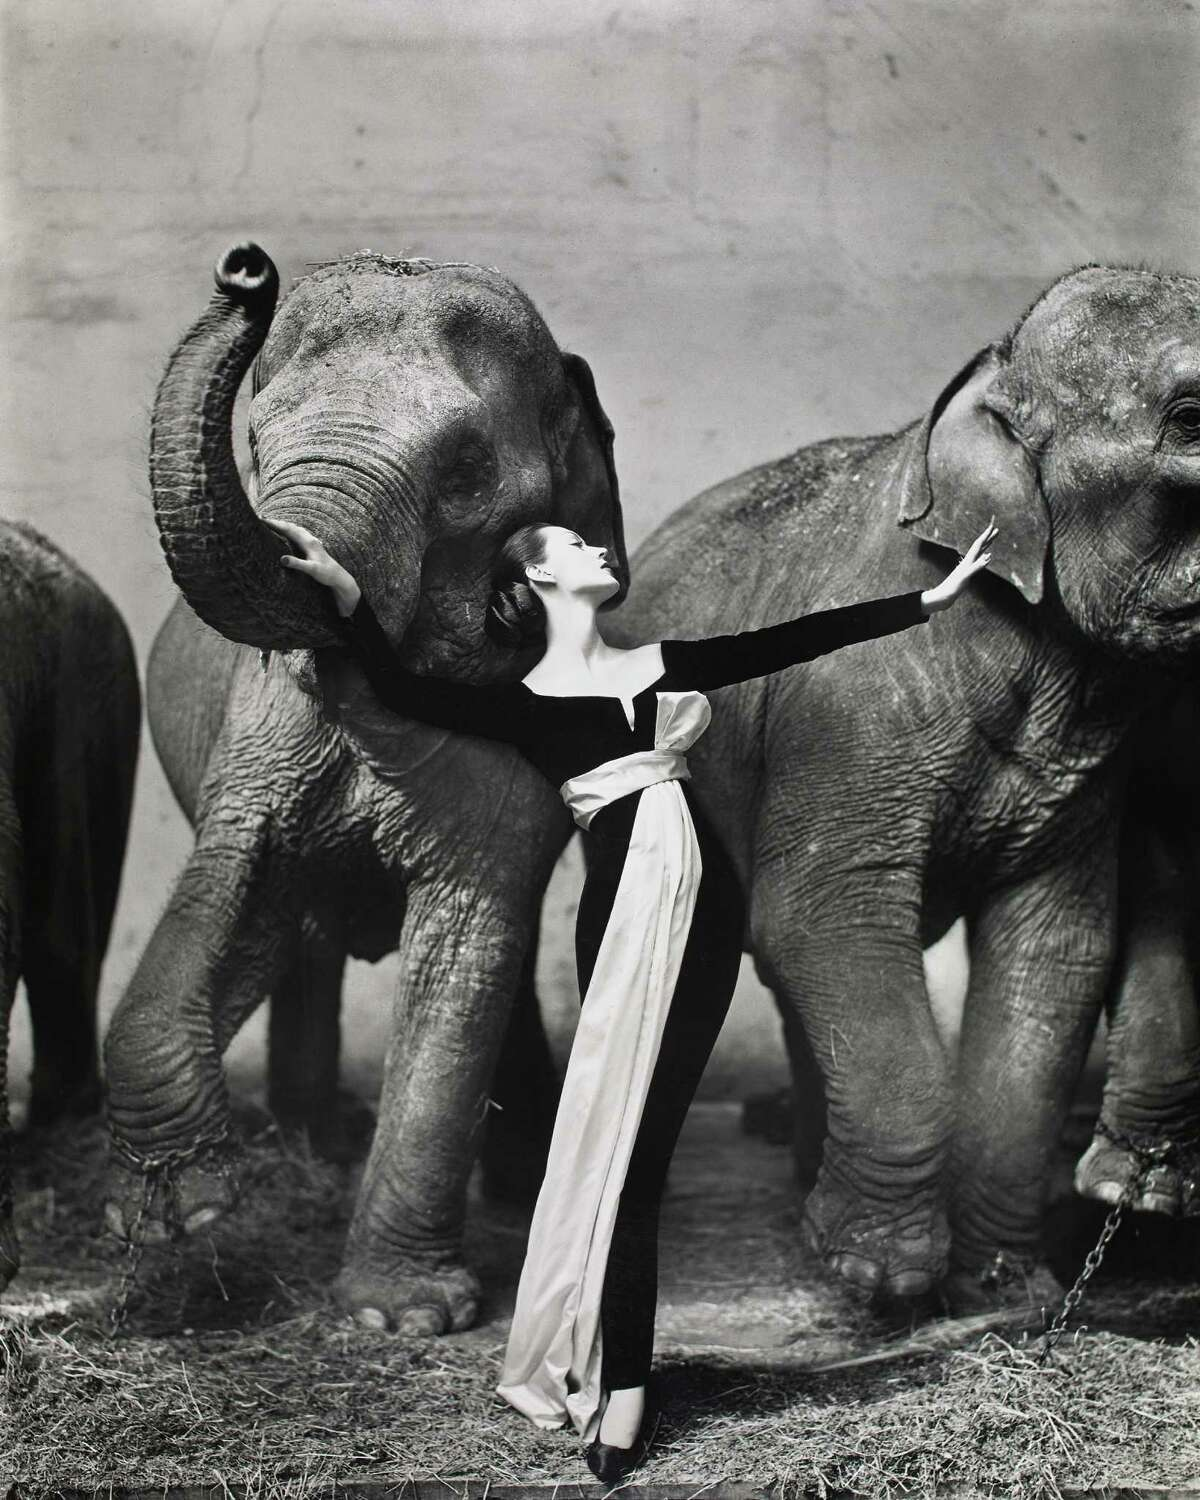 """Among works on view at MFAH through Oct. 11 in the show """"In Appreciation: Gifts in Honor of Anne Wilkes Tucker"""" is Richard Avedon's """"Dovima with Elephants, Evening Dress by Dior, Cirque déHiver, Paris, August 1955."""" (Gelatin silver print, the Museum of Fine Arts, Houston, promised gift of Karen Kelsey Duddlesten in honor of Anne Wilkes Tucker on the occasion of her retirement. The Richard Avedon Foundation)"""